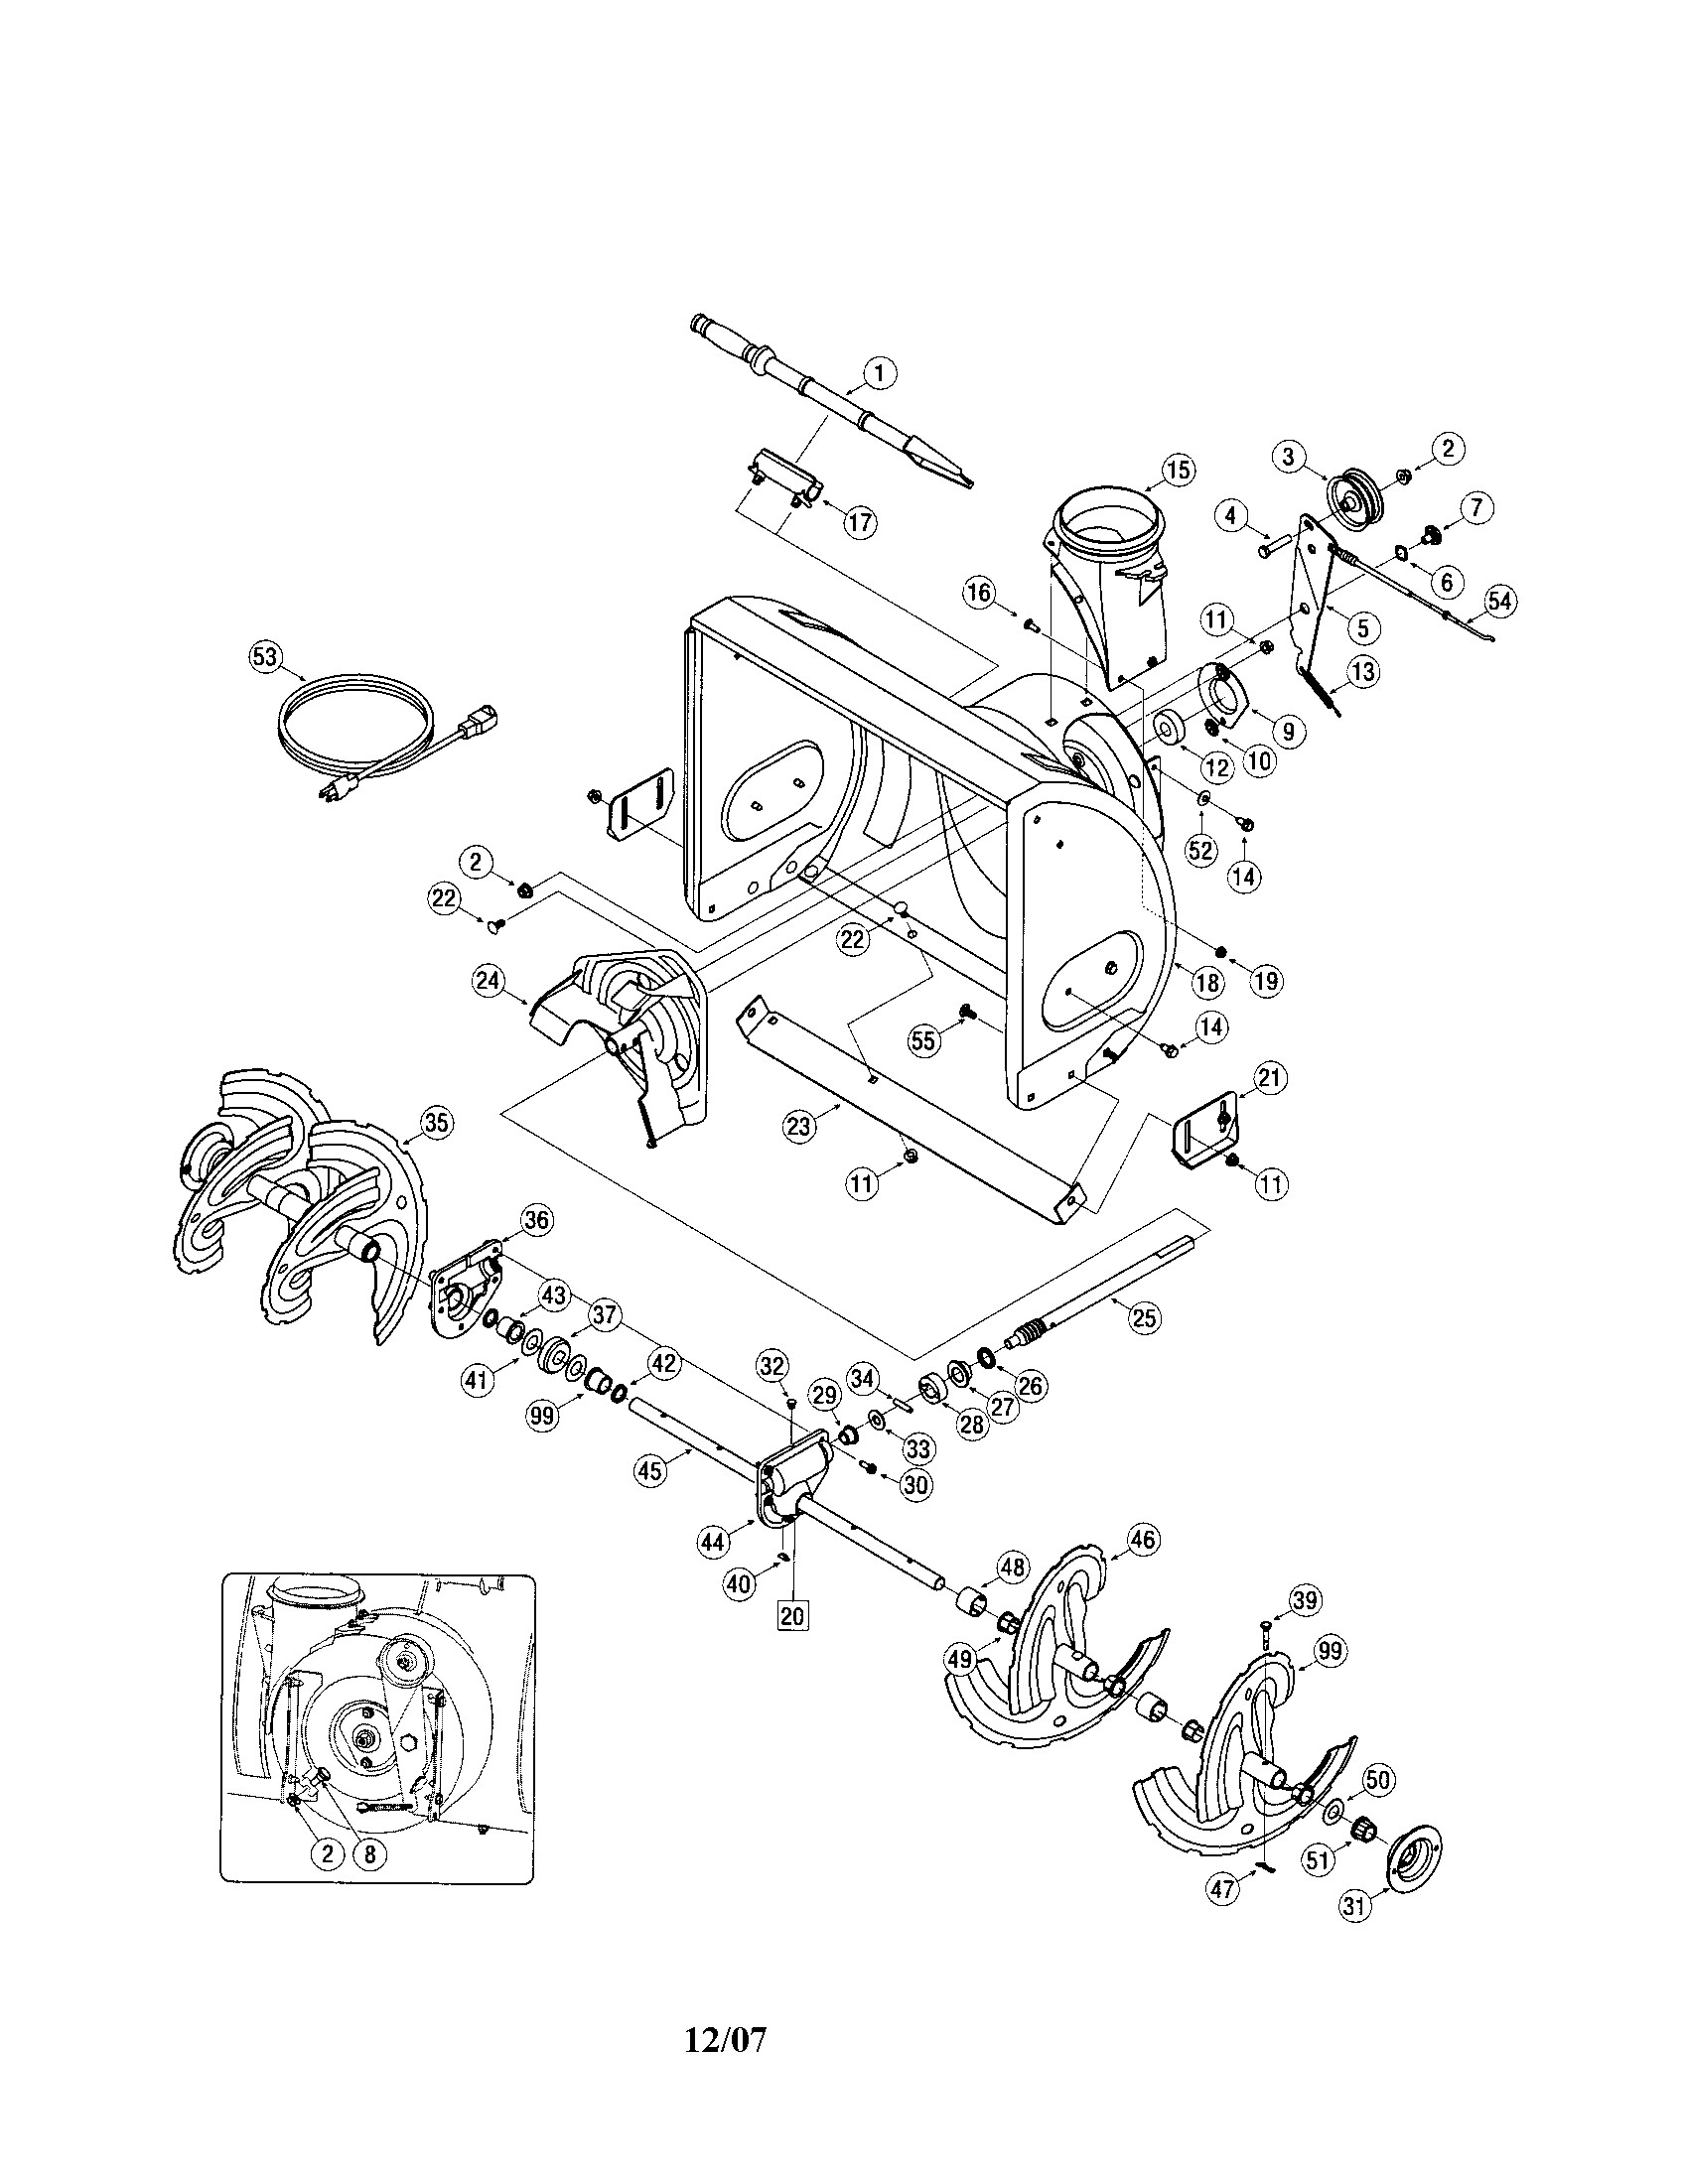 Craftsman Leaf Blower Parts Diagram Wel E to toolboxhero I Will Help You the Craftsman Snow Of Craftsman Leaf Blower Parts Diagram